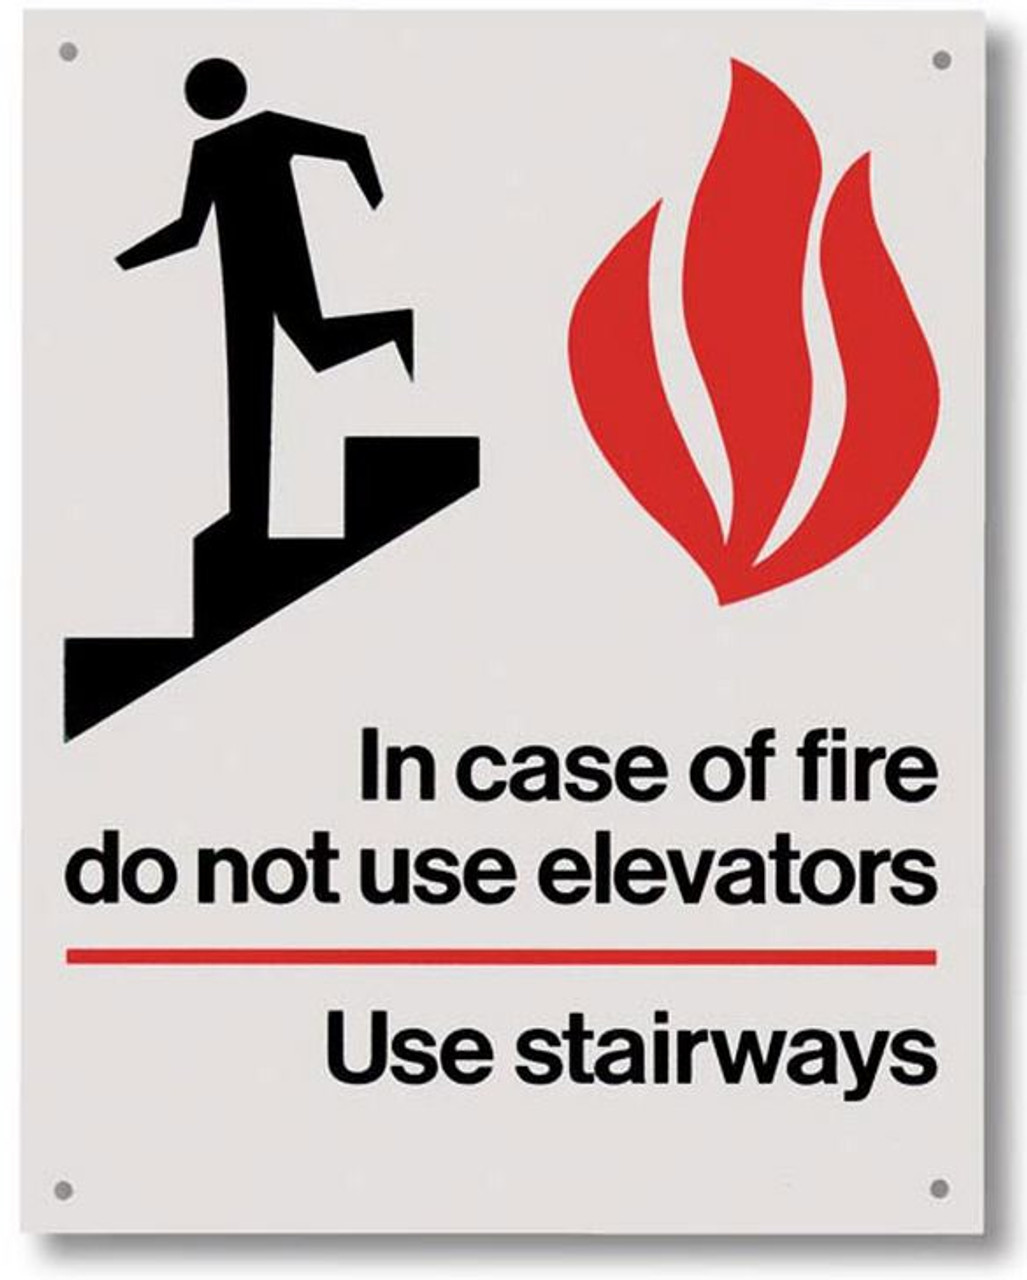 """RP117 Rigid Plastic In Case of Fire Signs 5.5"""" x 7"""""""